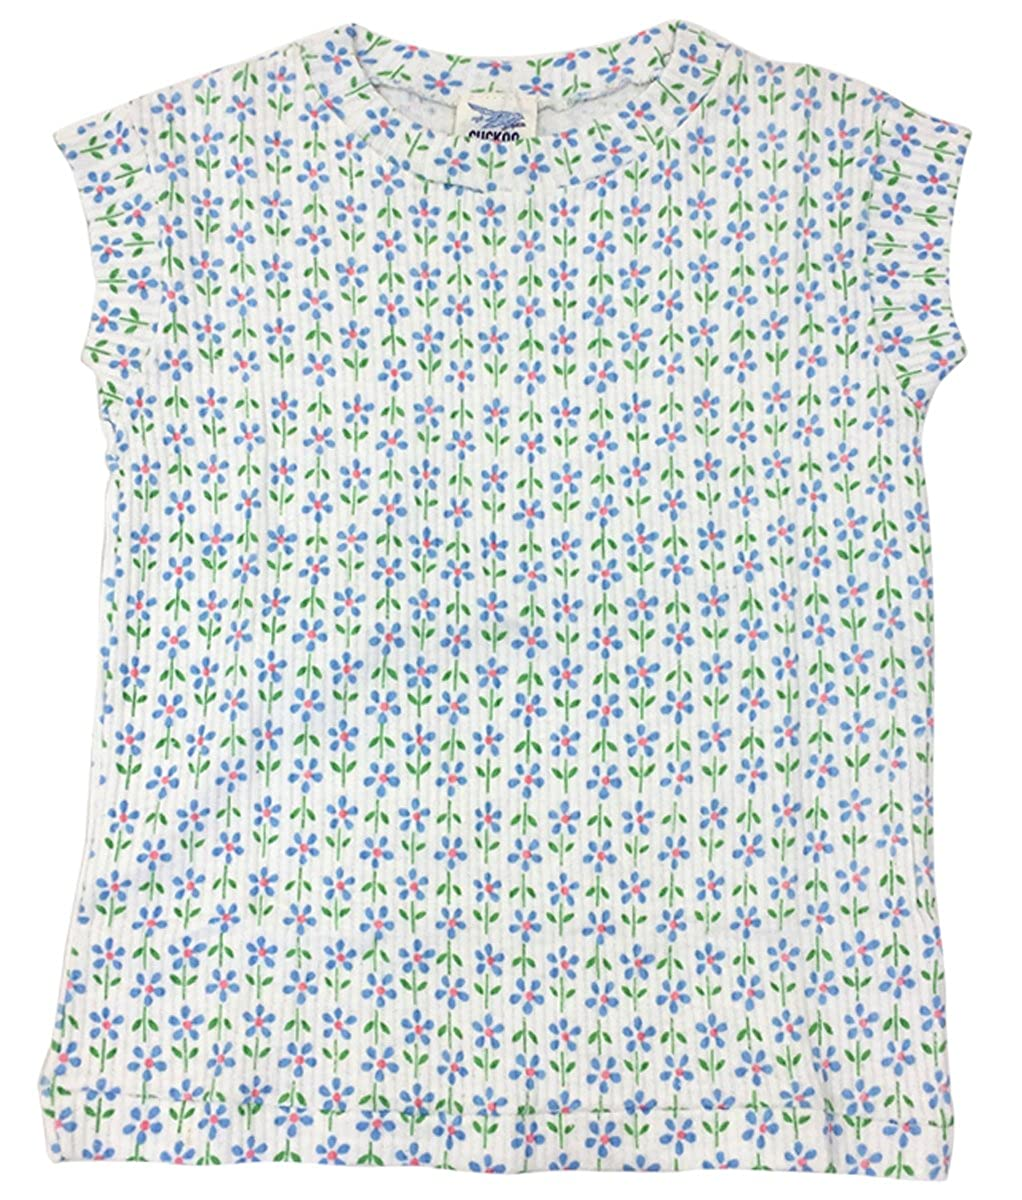 Cuckoo Girls T-Shirt Authentic Vintage Daisy Print Cap Sleeve Ribbed Top Sizes from 6 to 10 Years